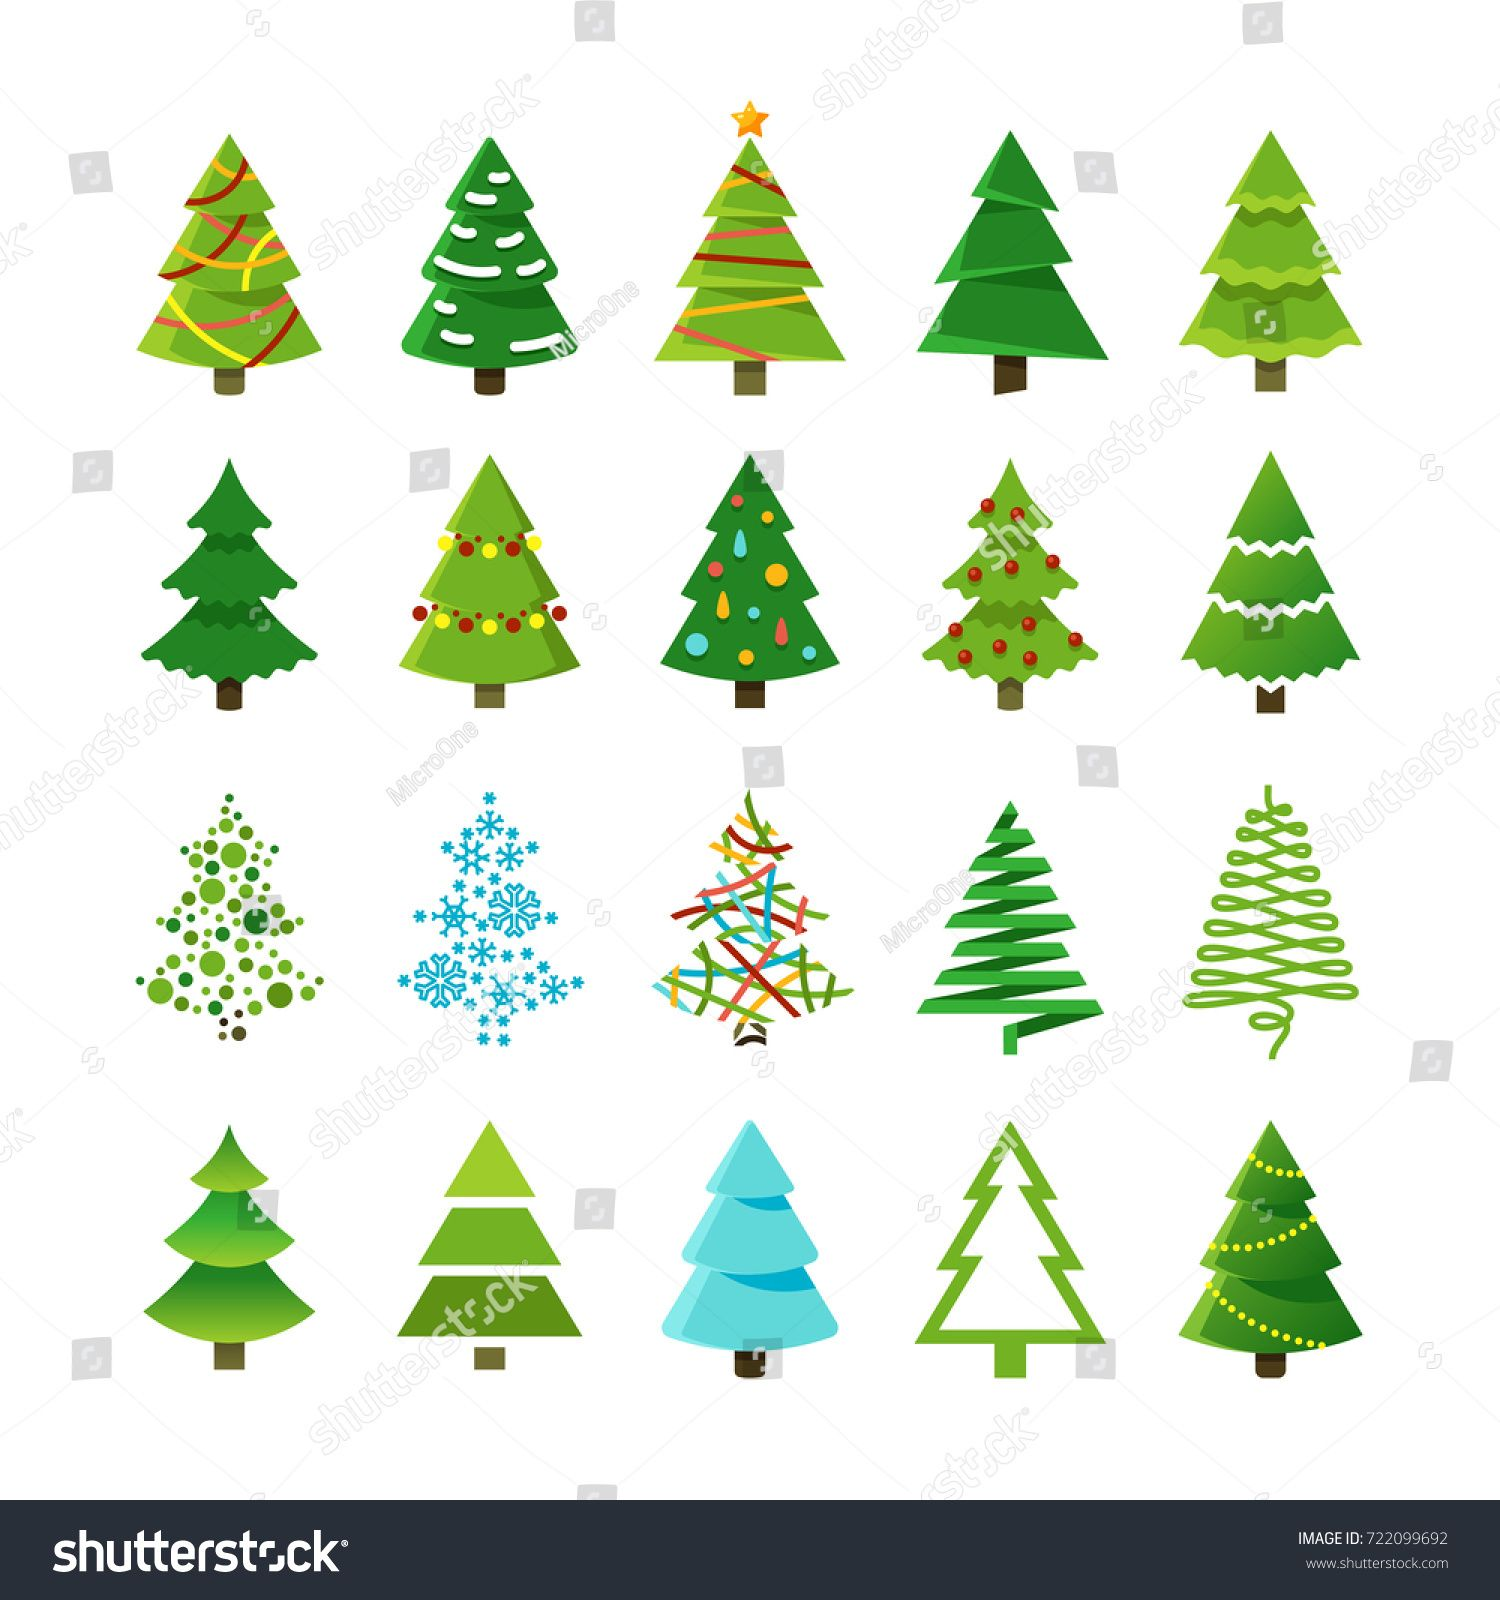 Cartoon Abstract Christmas Trees With Gifts And Balls Vector Set Green Christmas Tree Coll Christmas Tree Art Cartoon Christmas Tree Christmas Tree With Gifts